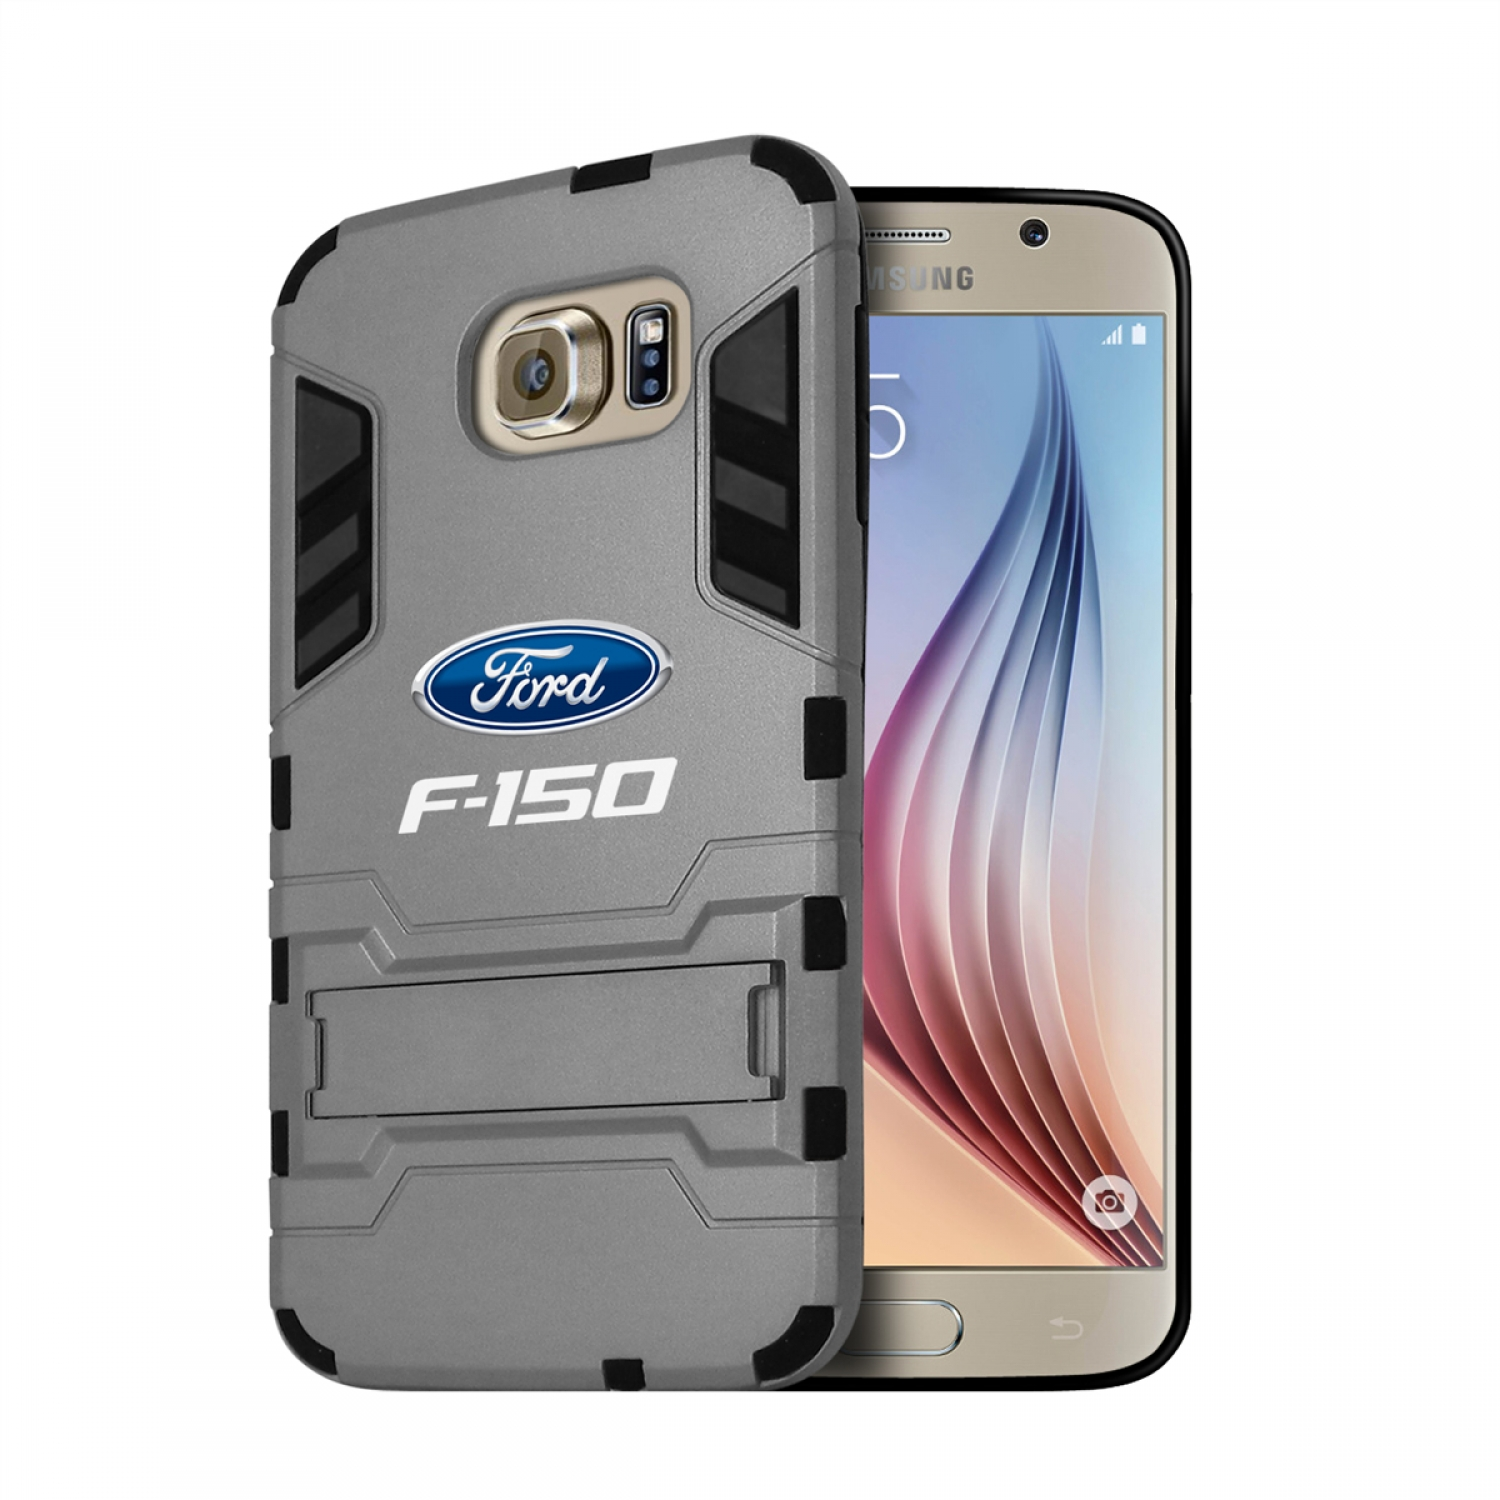 Ford F-150 Samsung Galaxy S6 Shockproof TPU ABS Hybrid Gray Phone Case